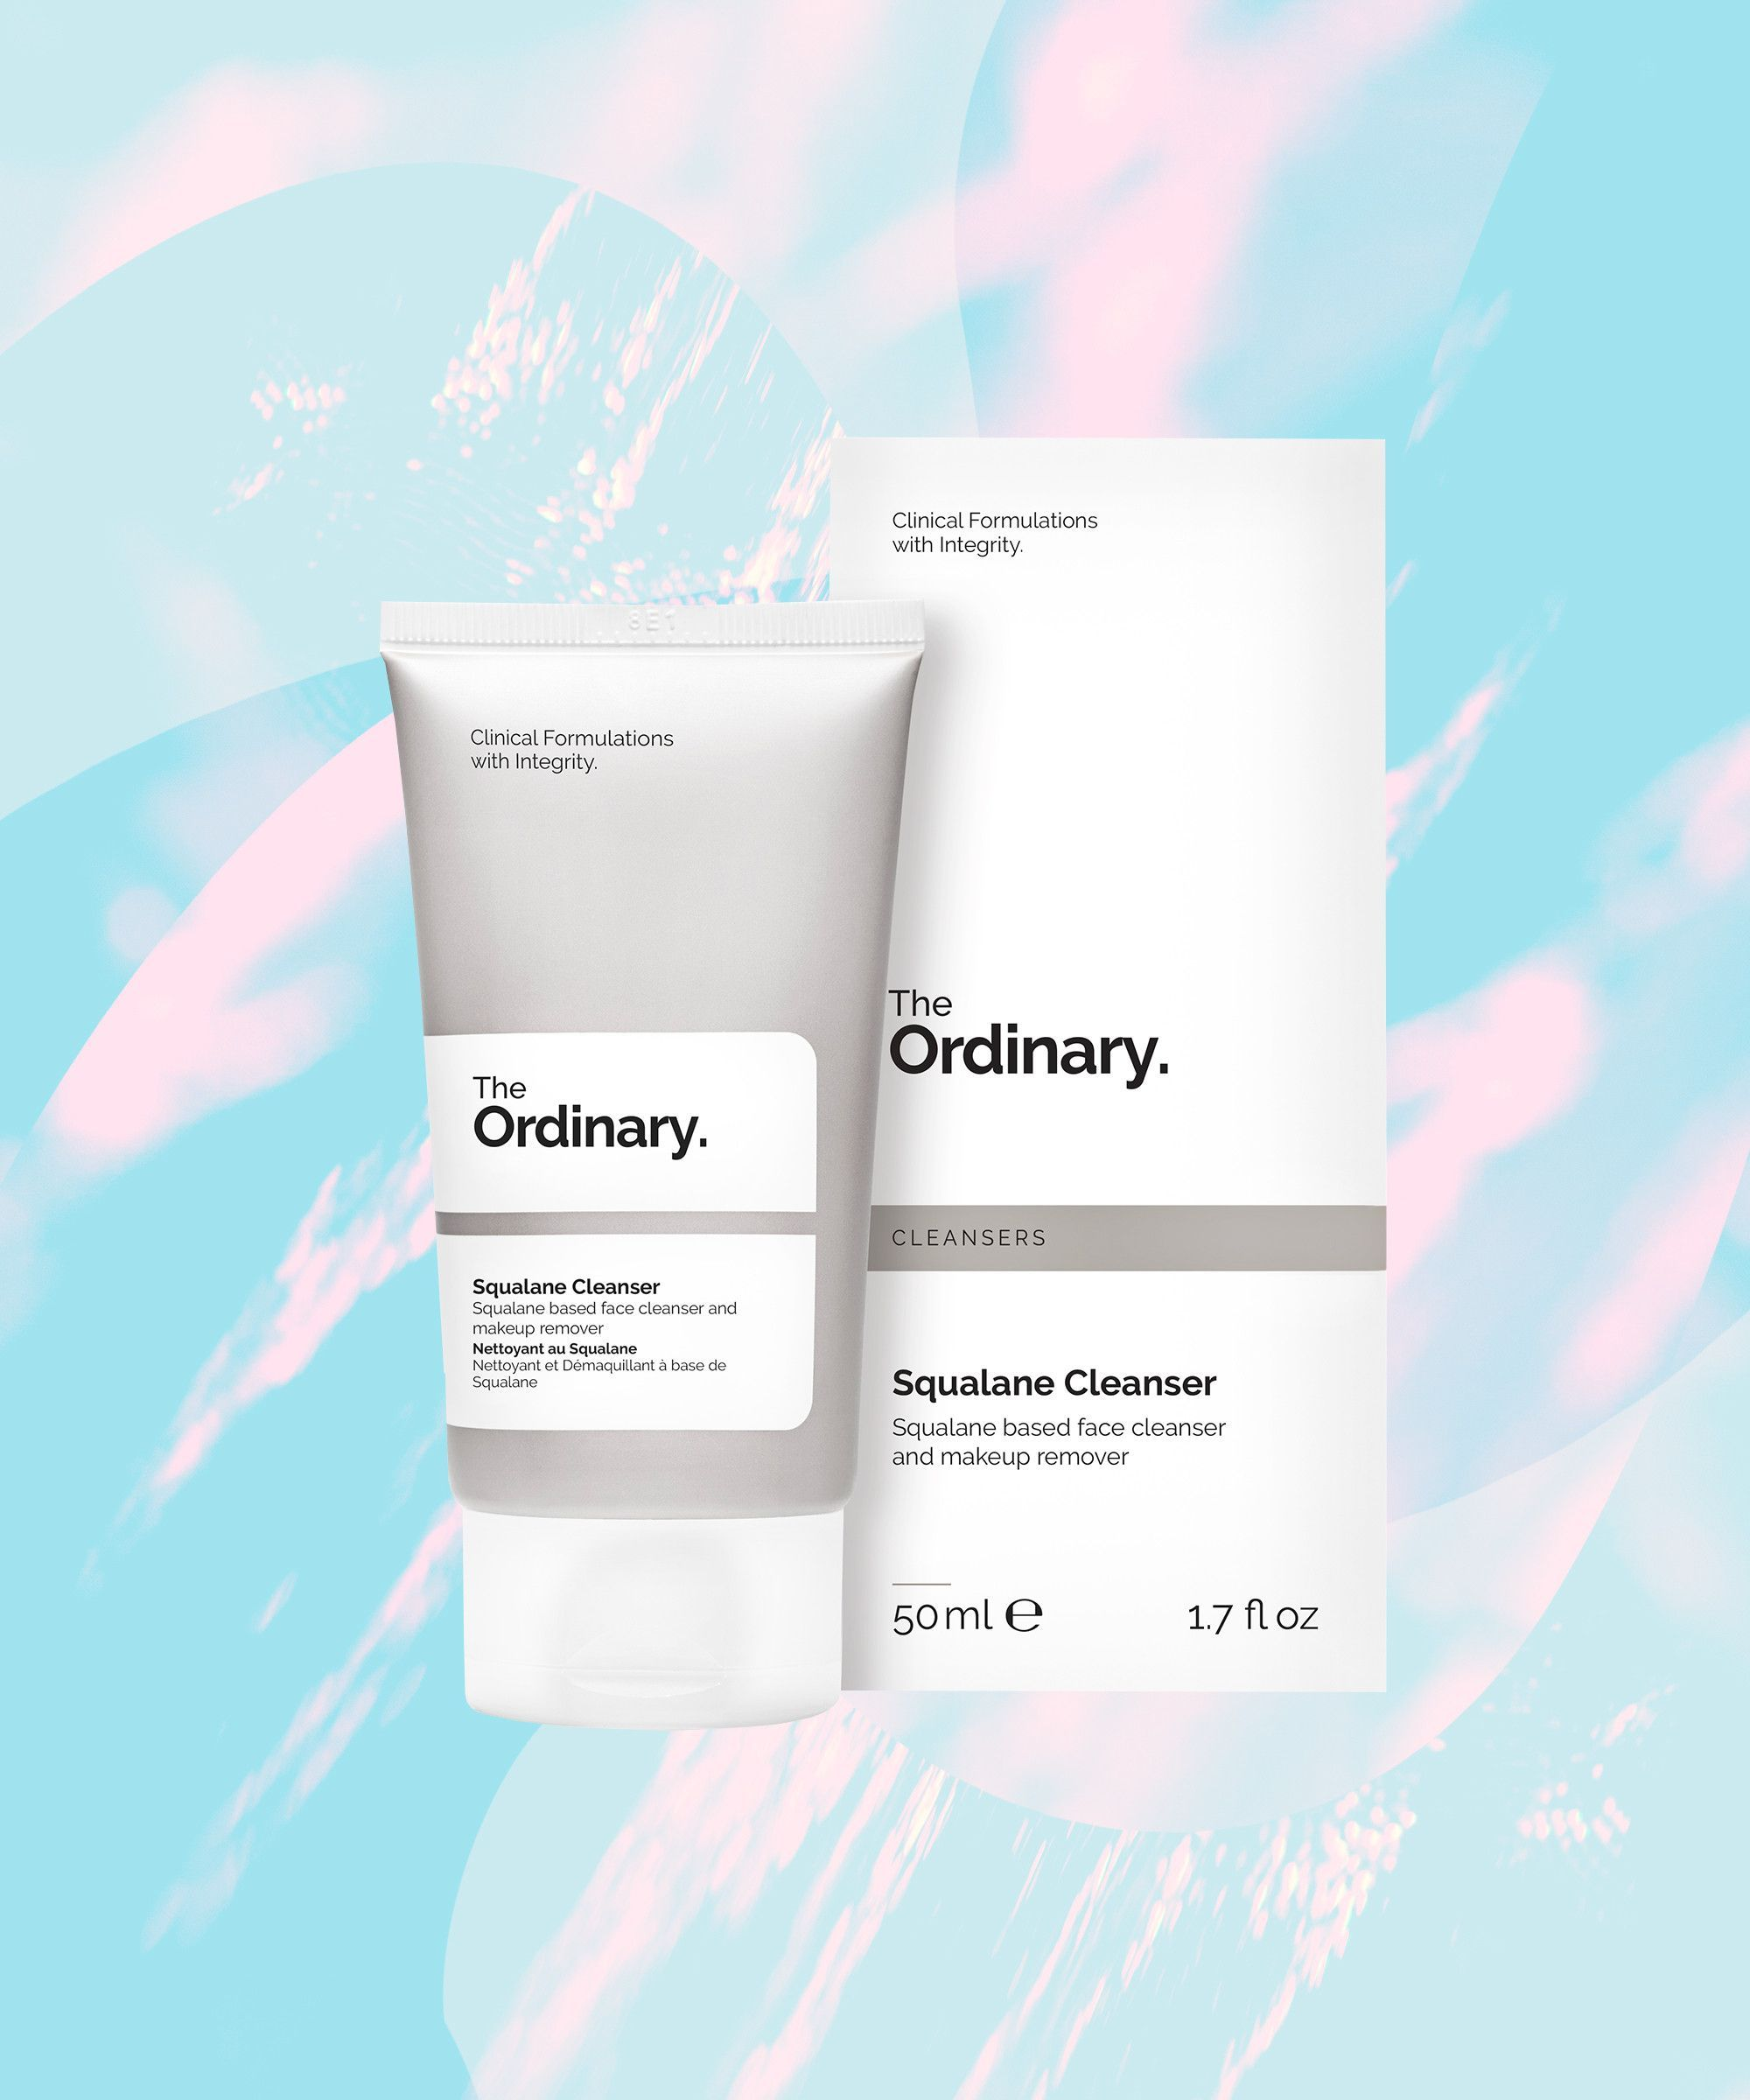 Squalane Cleanser Cleanser, Makeup wipes, Face cleanser